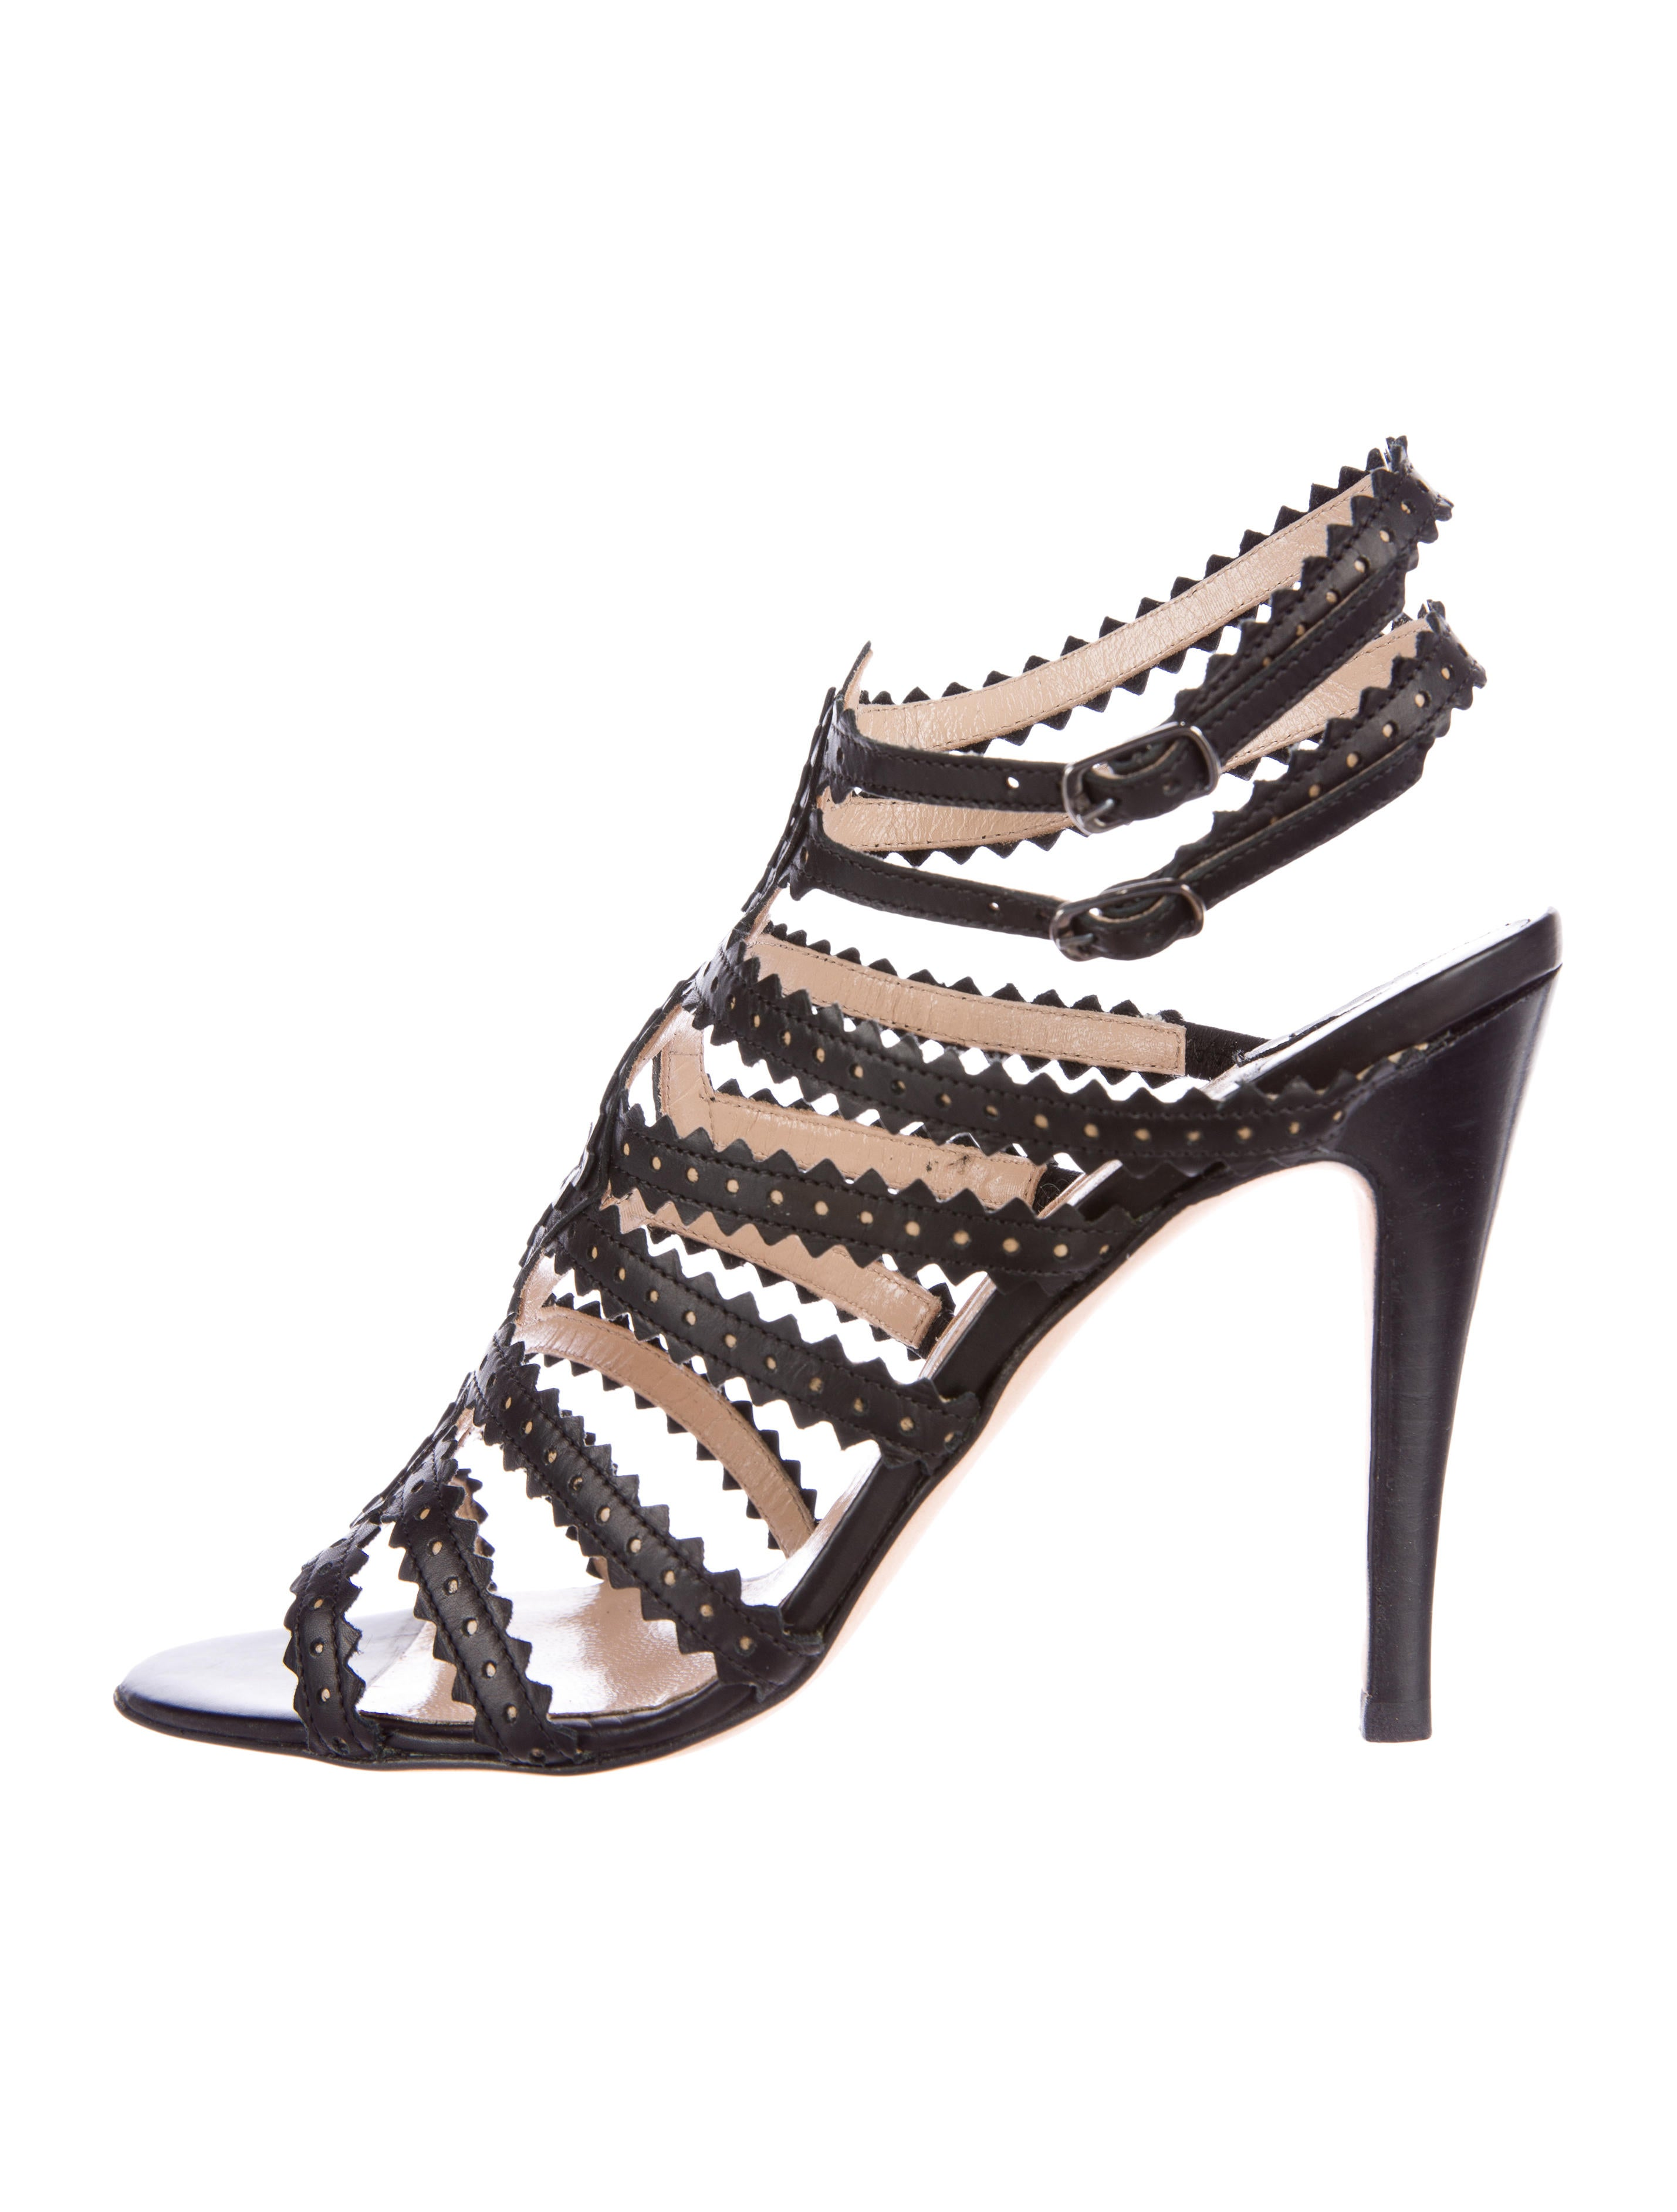 Manolo Blahnik Perforated Cage Sandals sale discounts discount online from china low shipping fee visit new sale online TL89BZiDC